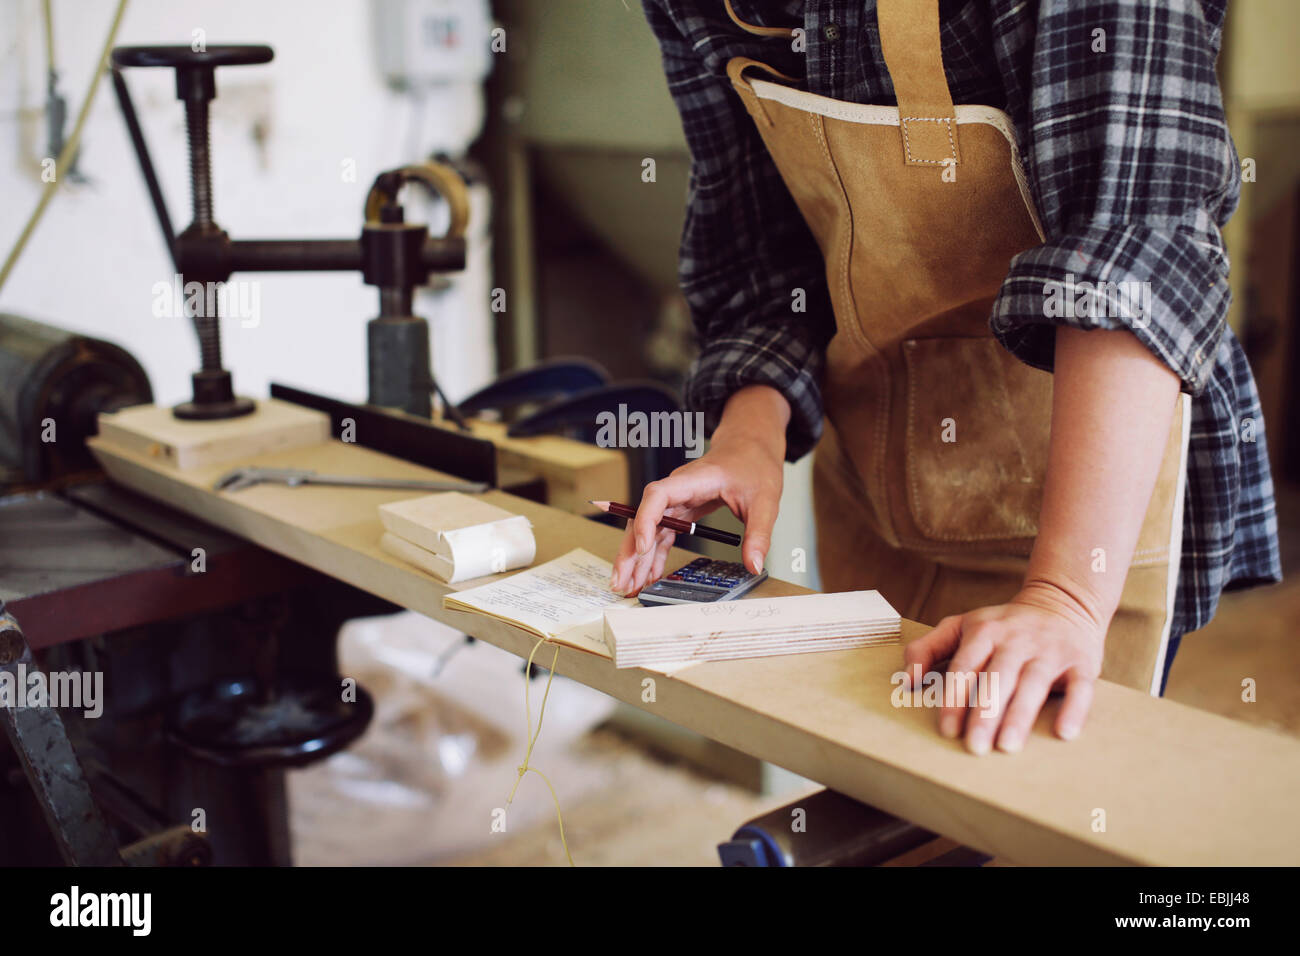 Cropped shot of young craftswoman using calculator in pipe organ workshop - Stock Image